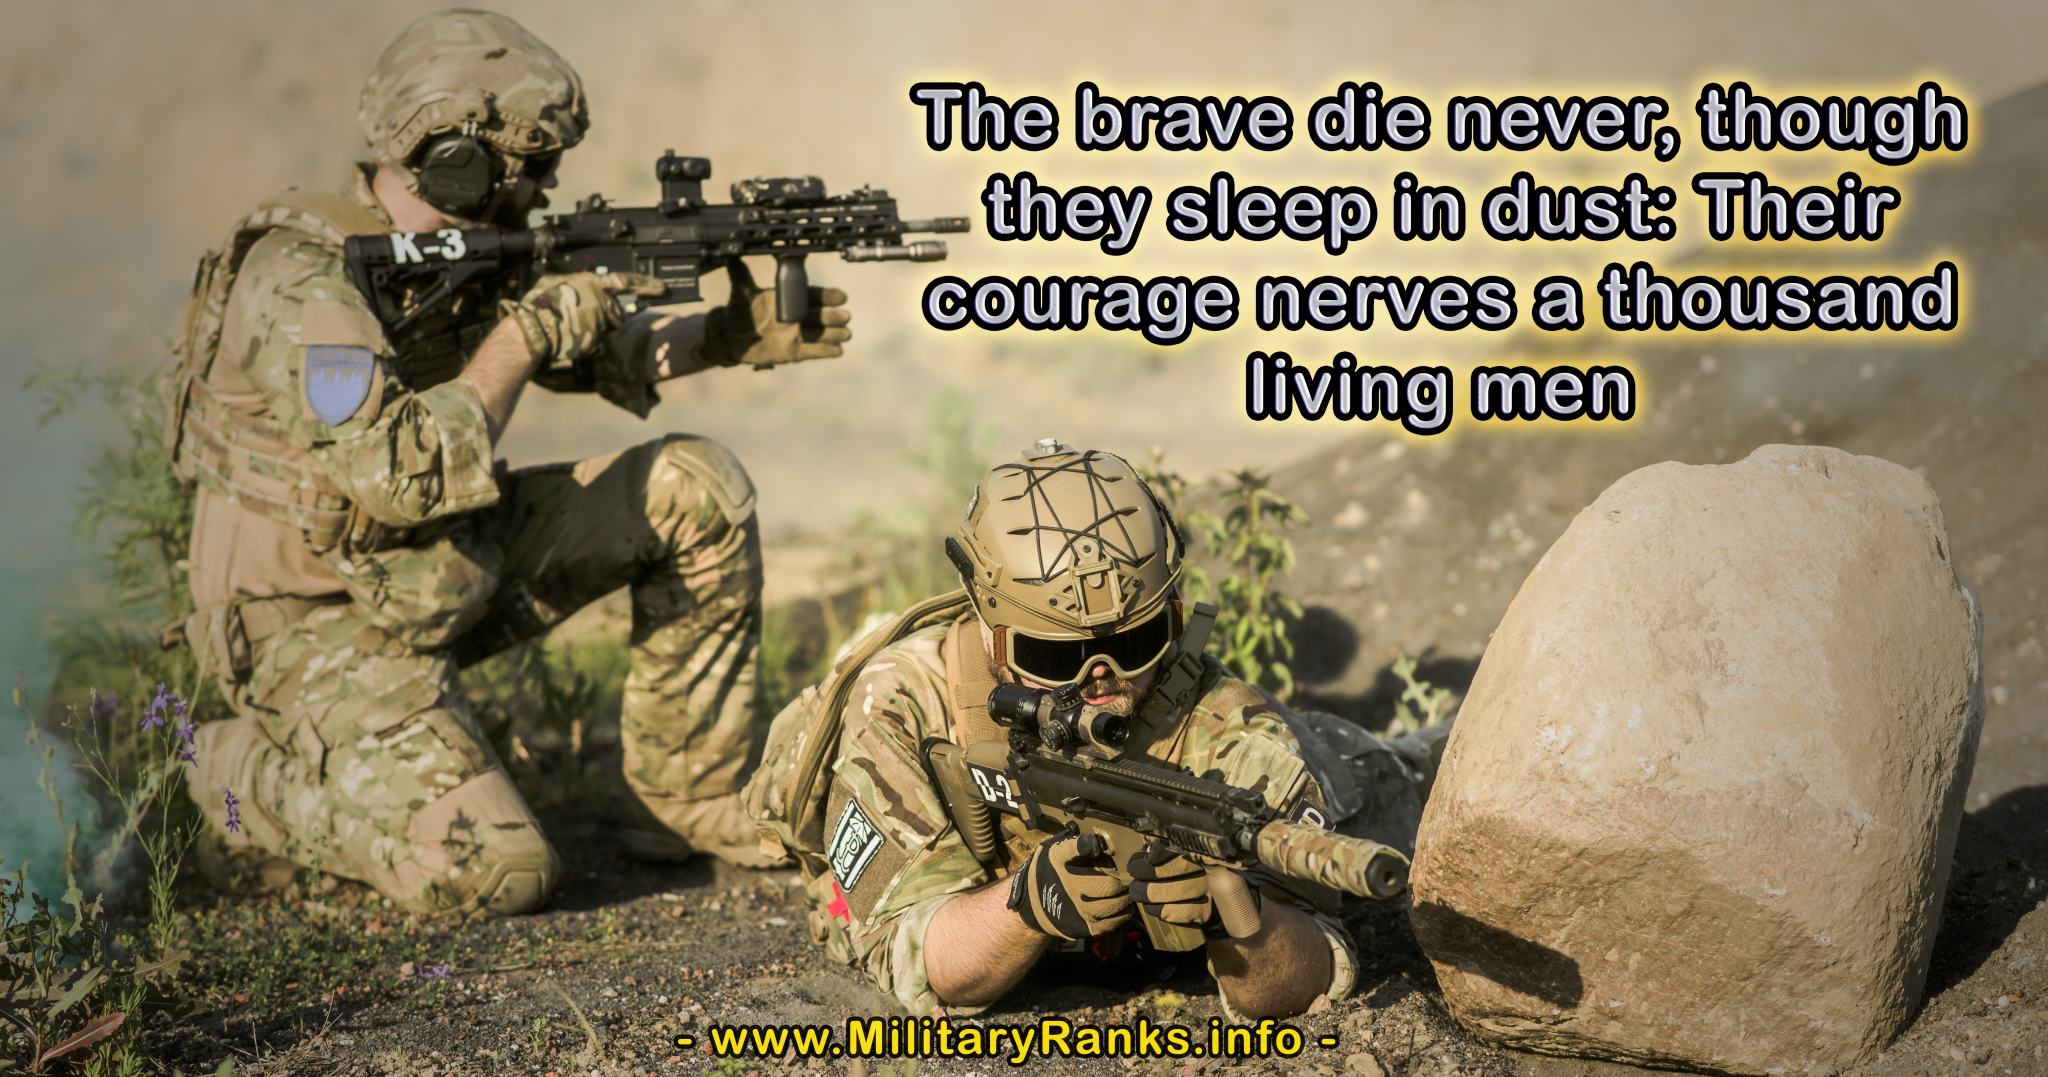 The brave die never though they sleep in dust Military Quotes